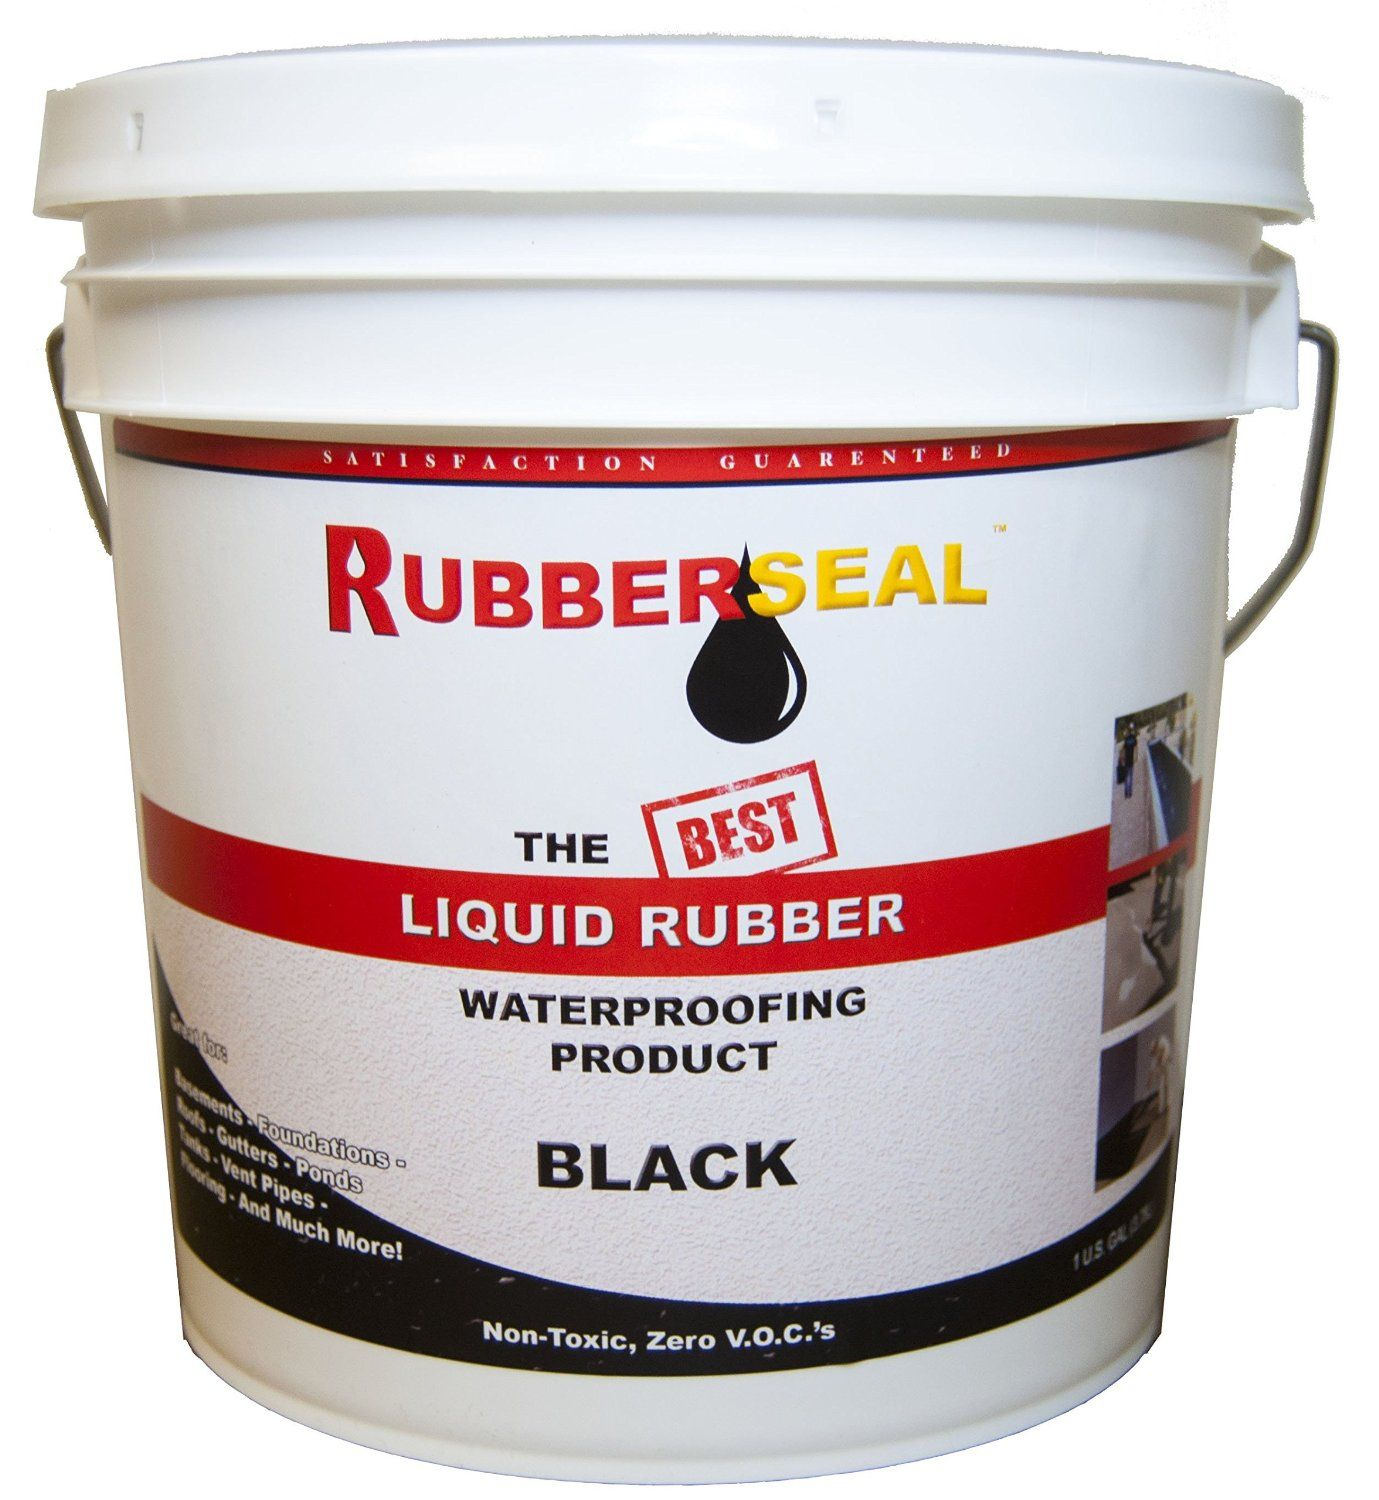 Rubberseal Liquid Rubber Waterproofing And Protective Coating Roll On Automotive Paint Sealers And P Liquid Rubber Liquid Waterproofing Protective Coating